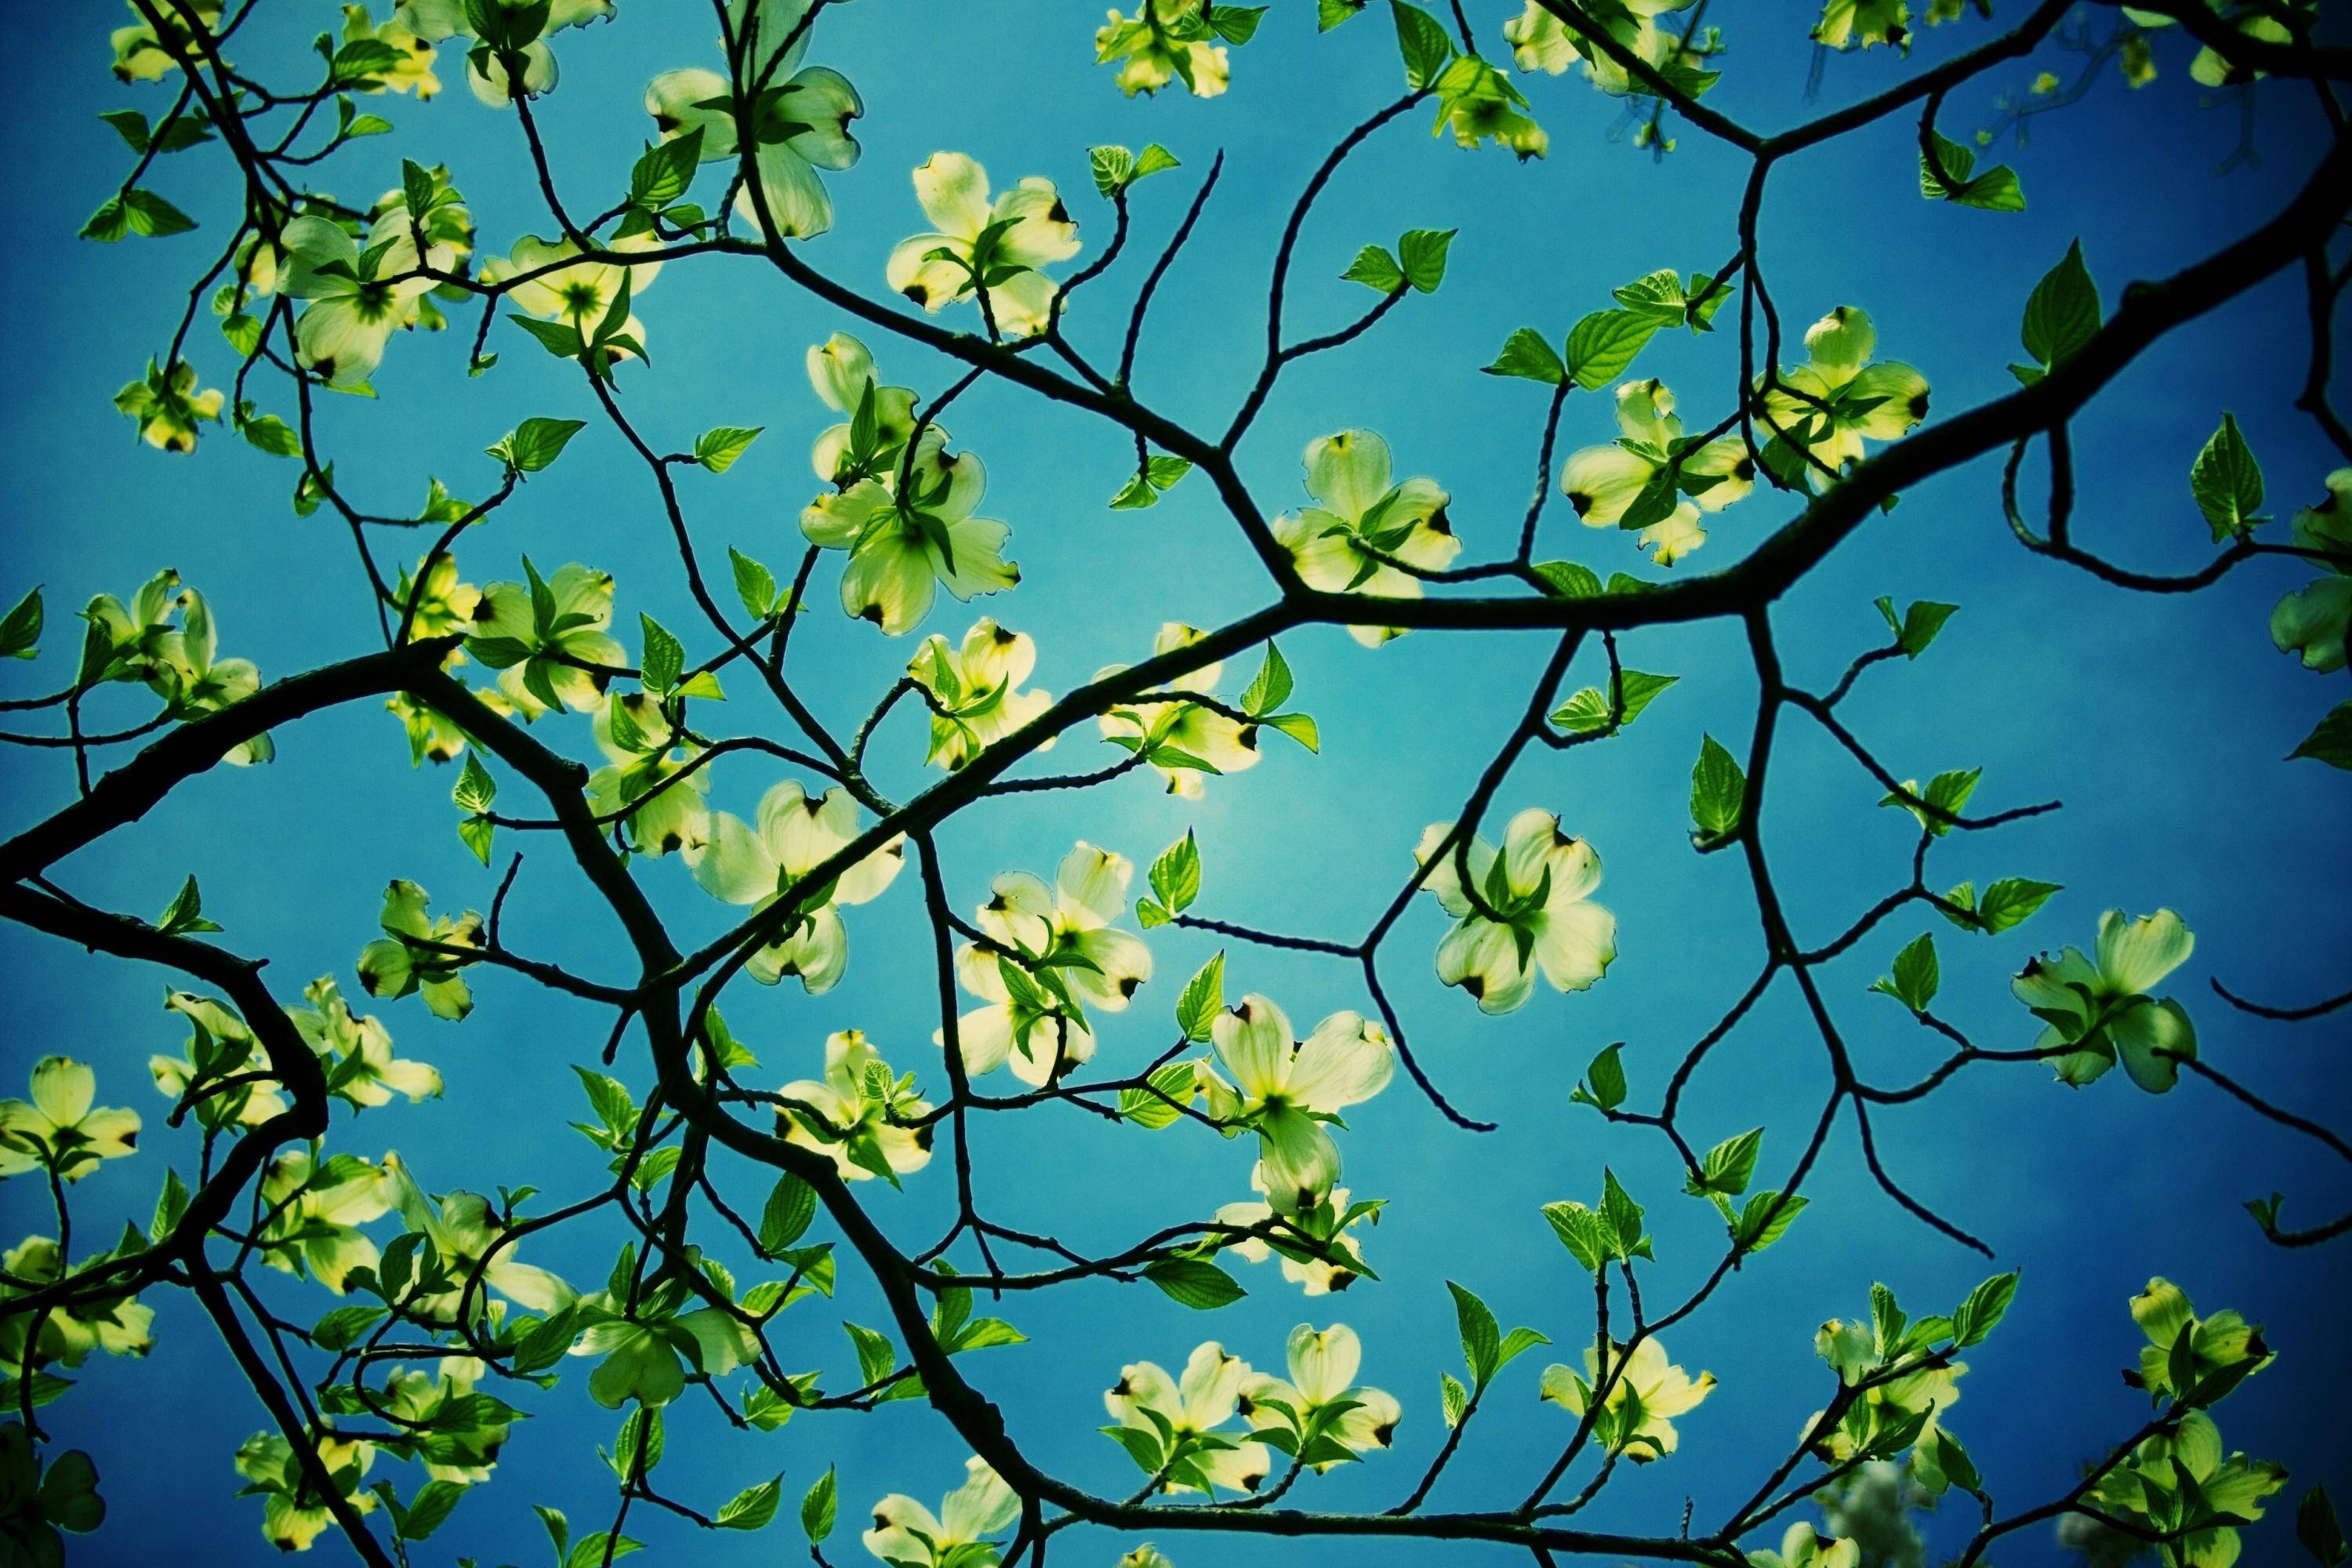 flowers stunning dogwood tree desktop wallpaper image browse